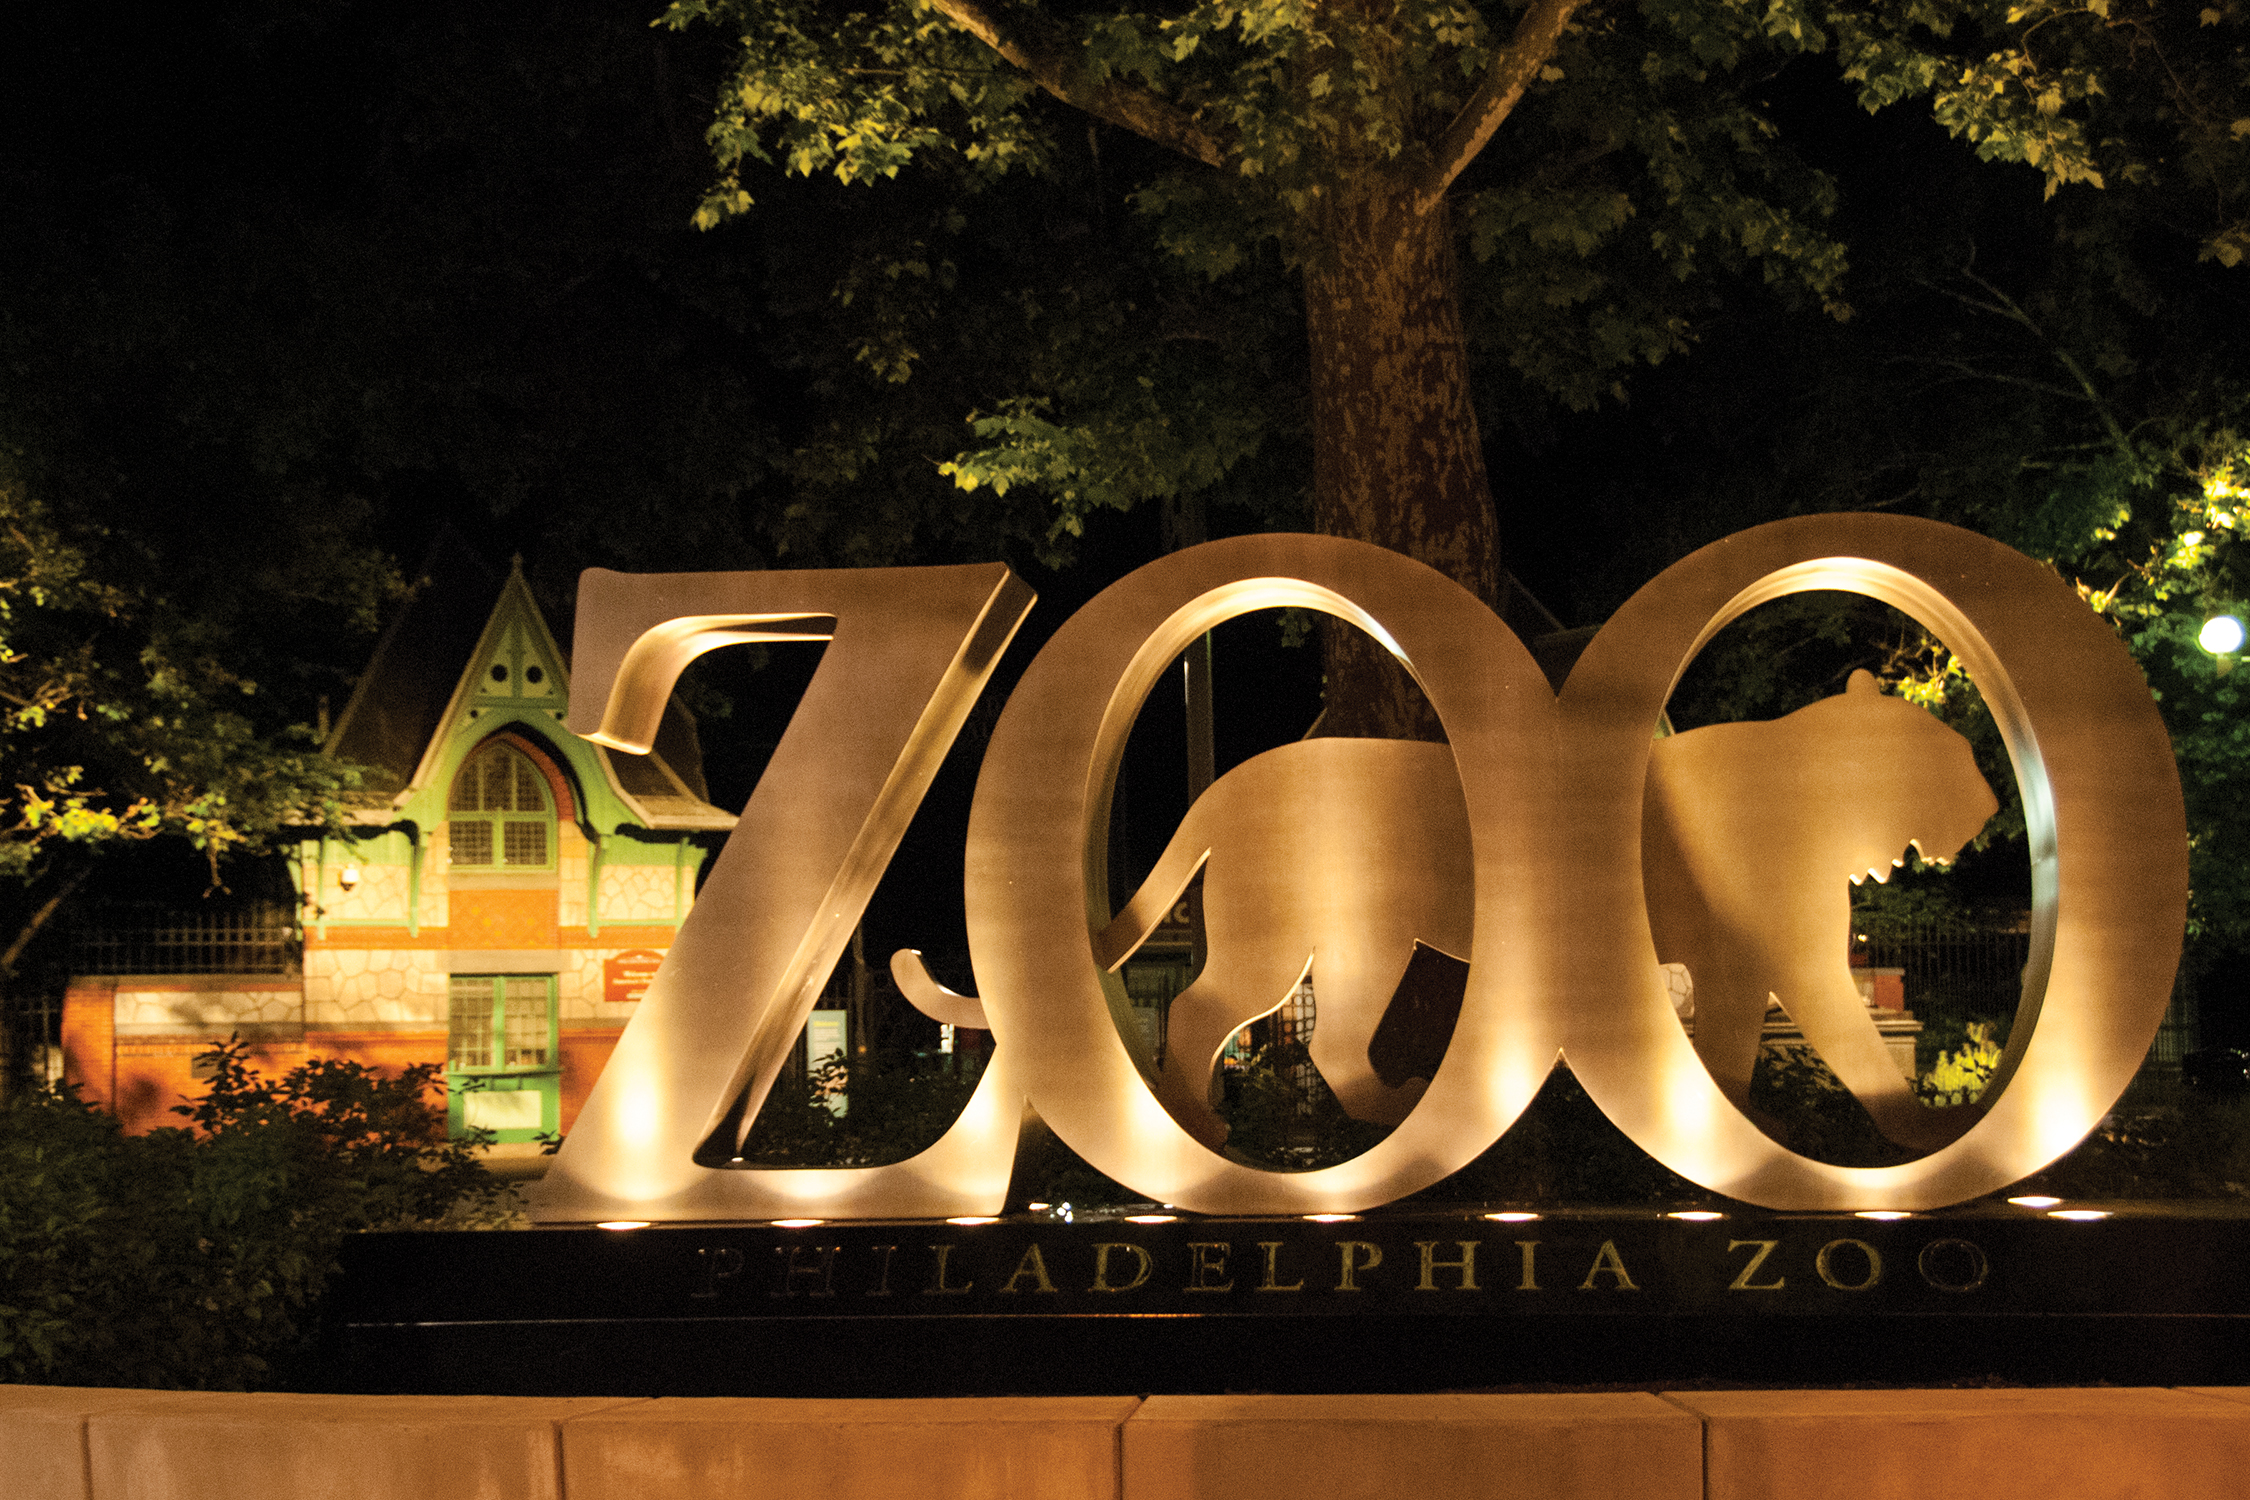 34th and Girard Zoo Sign